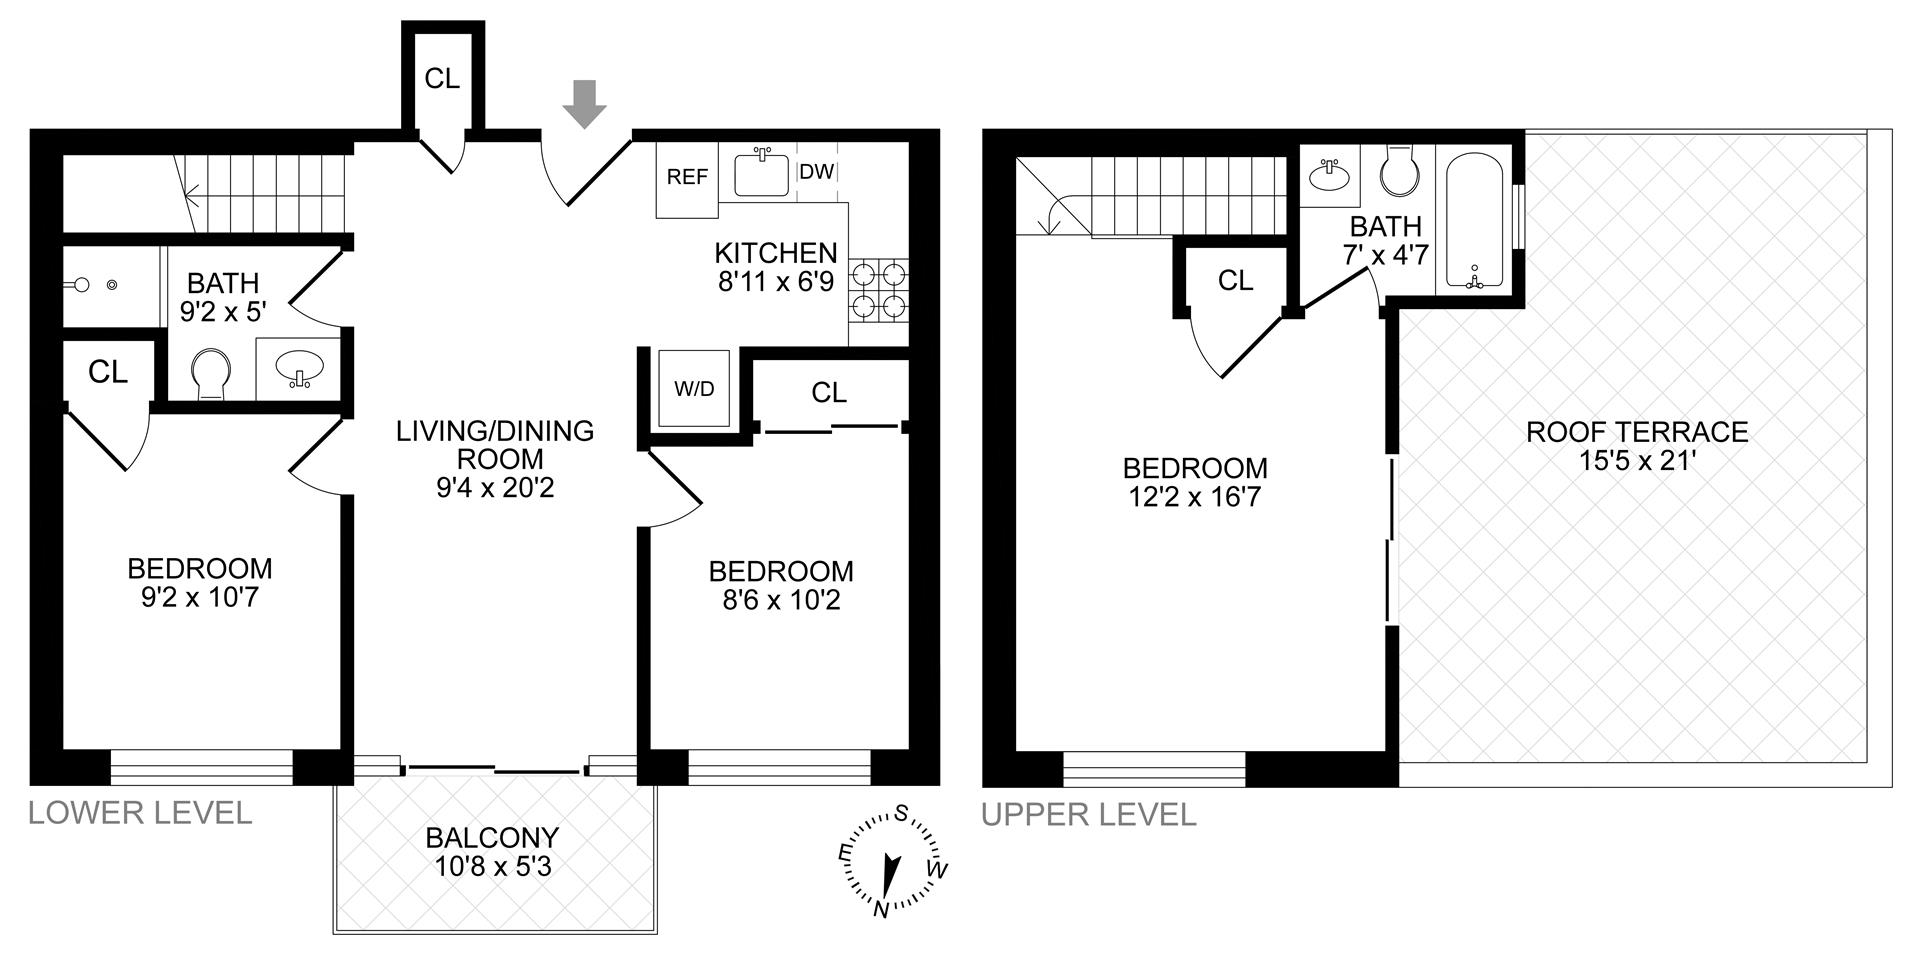 Floor plan of 292 Quincy St, 4F - Bedford - Stuyvesant, New York